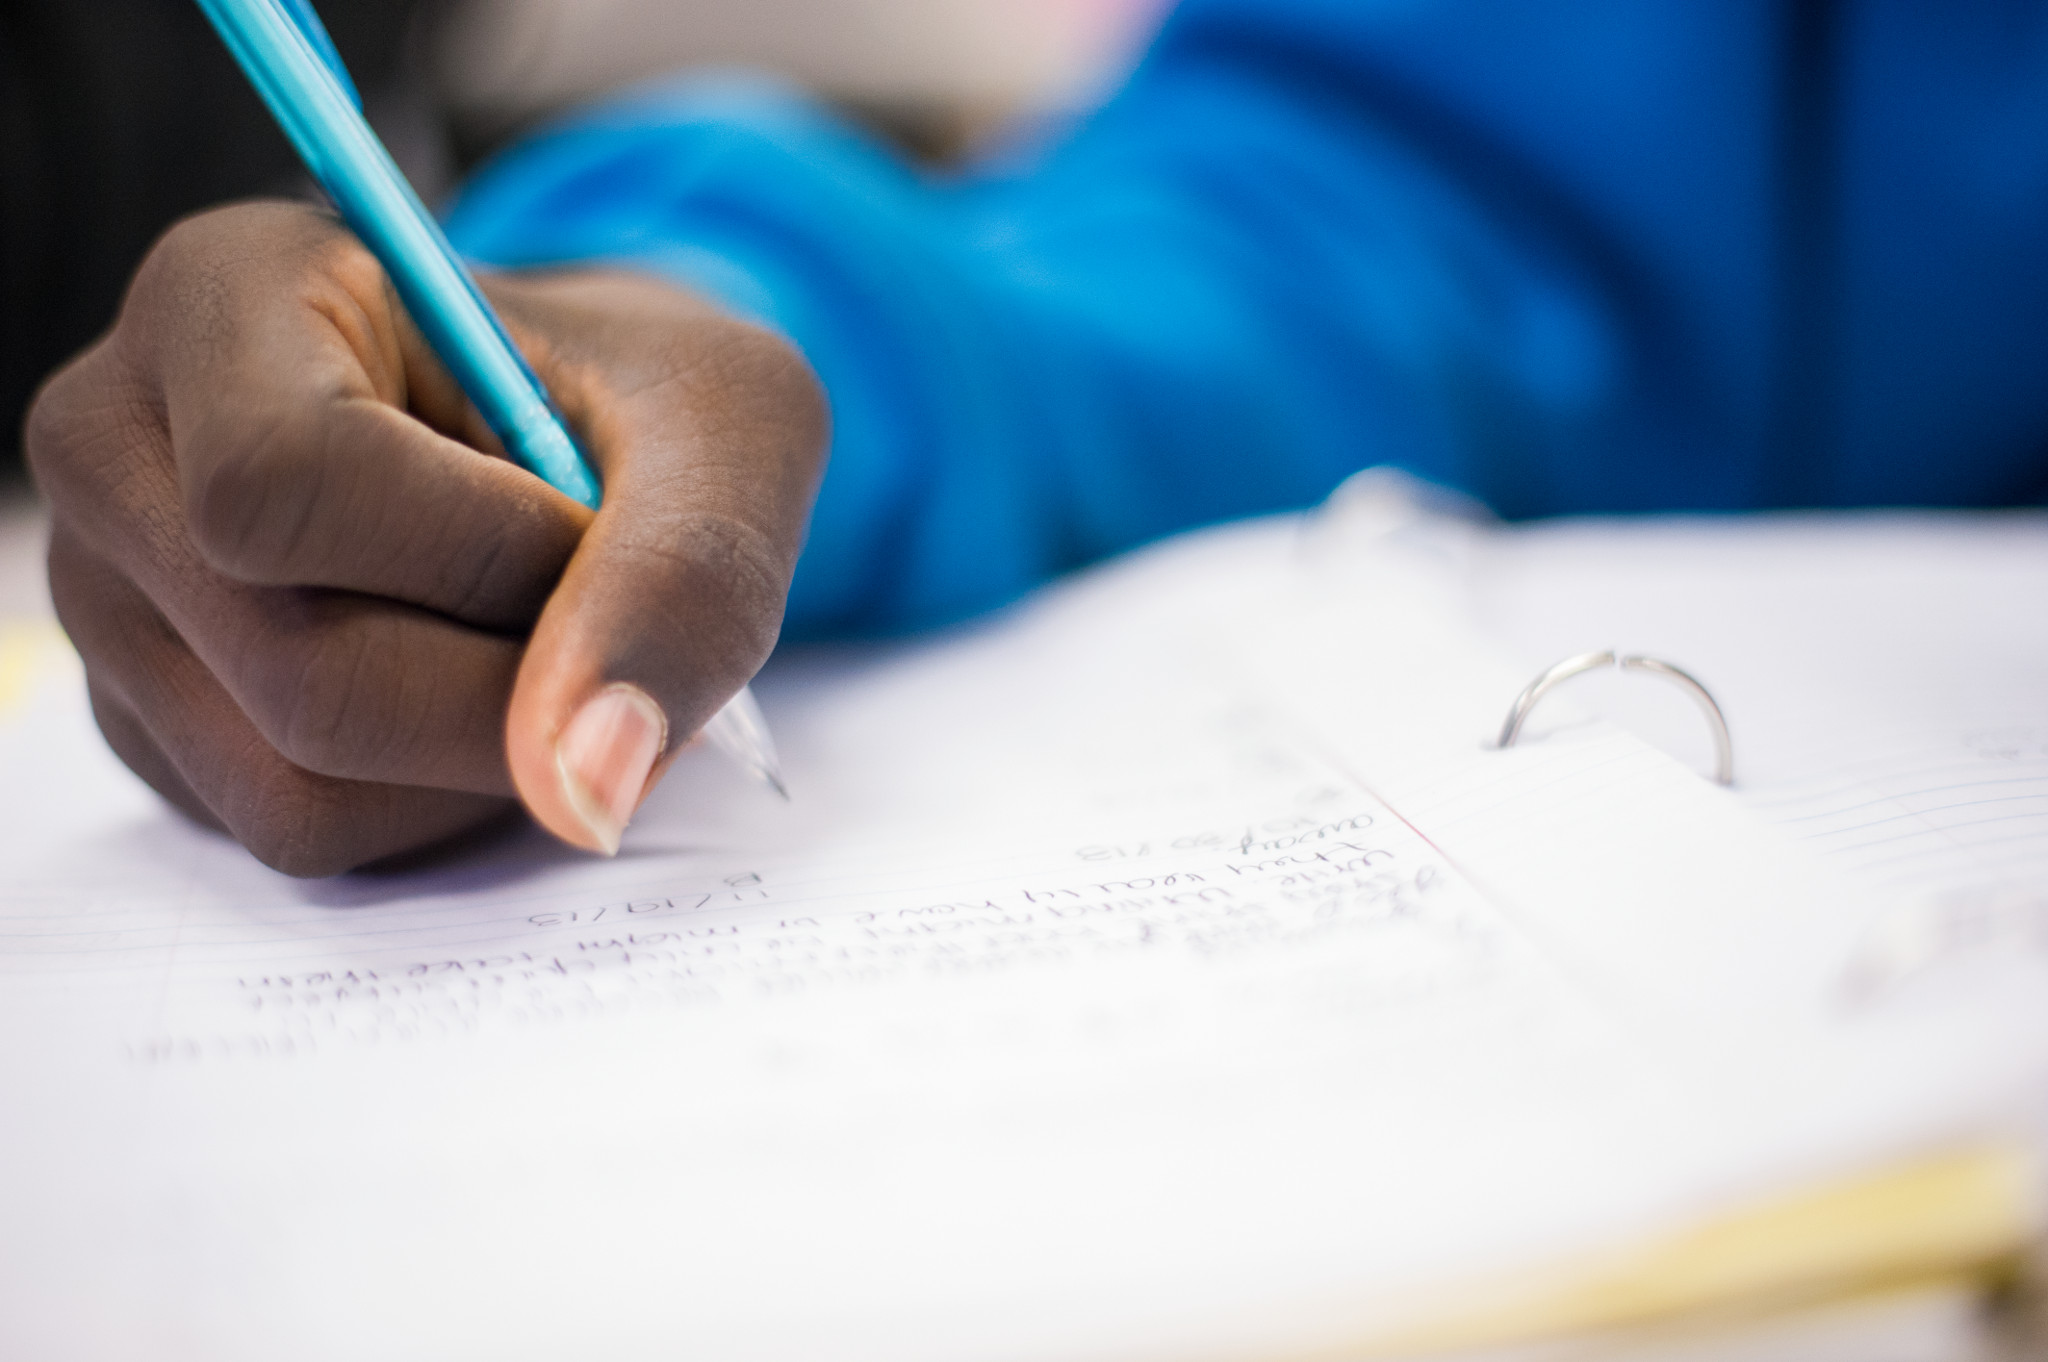 A close shot of a young girl's blue-sleeved arm and hand holding a blue pen working on a writing assignment.